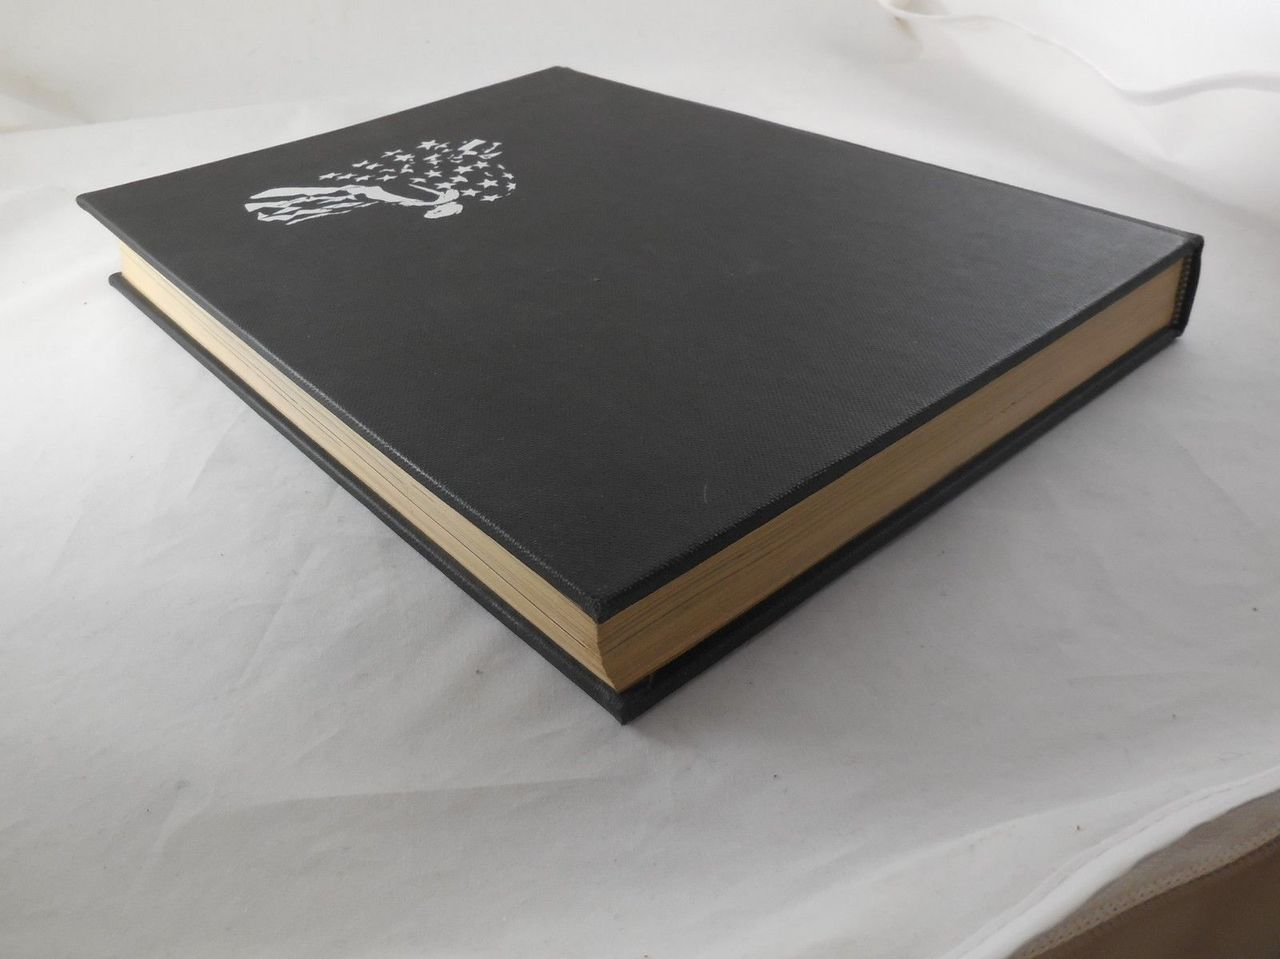 YEARBOOK of the NY STATE UNIVERSITY AT ALBANY - 1971